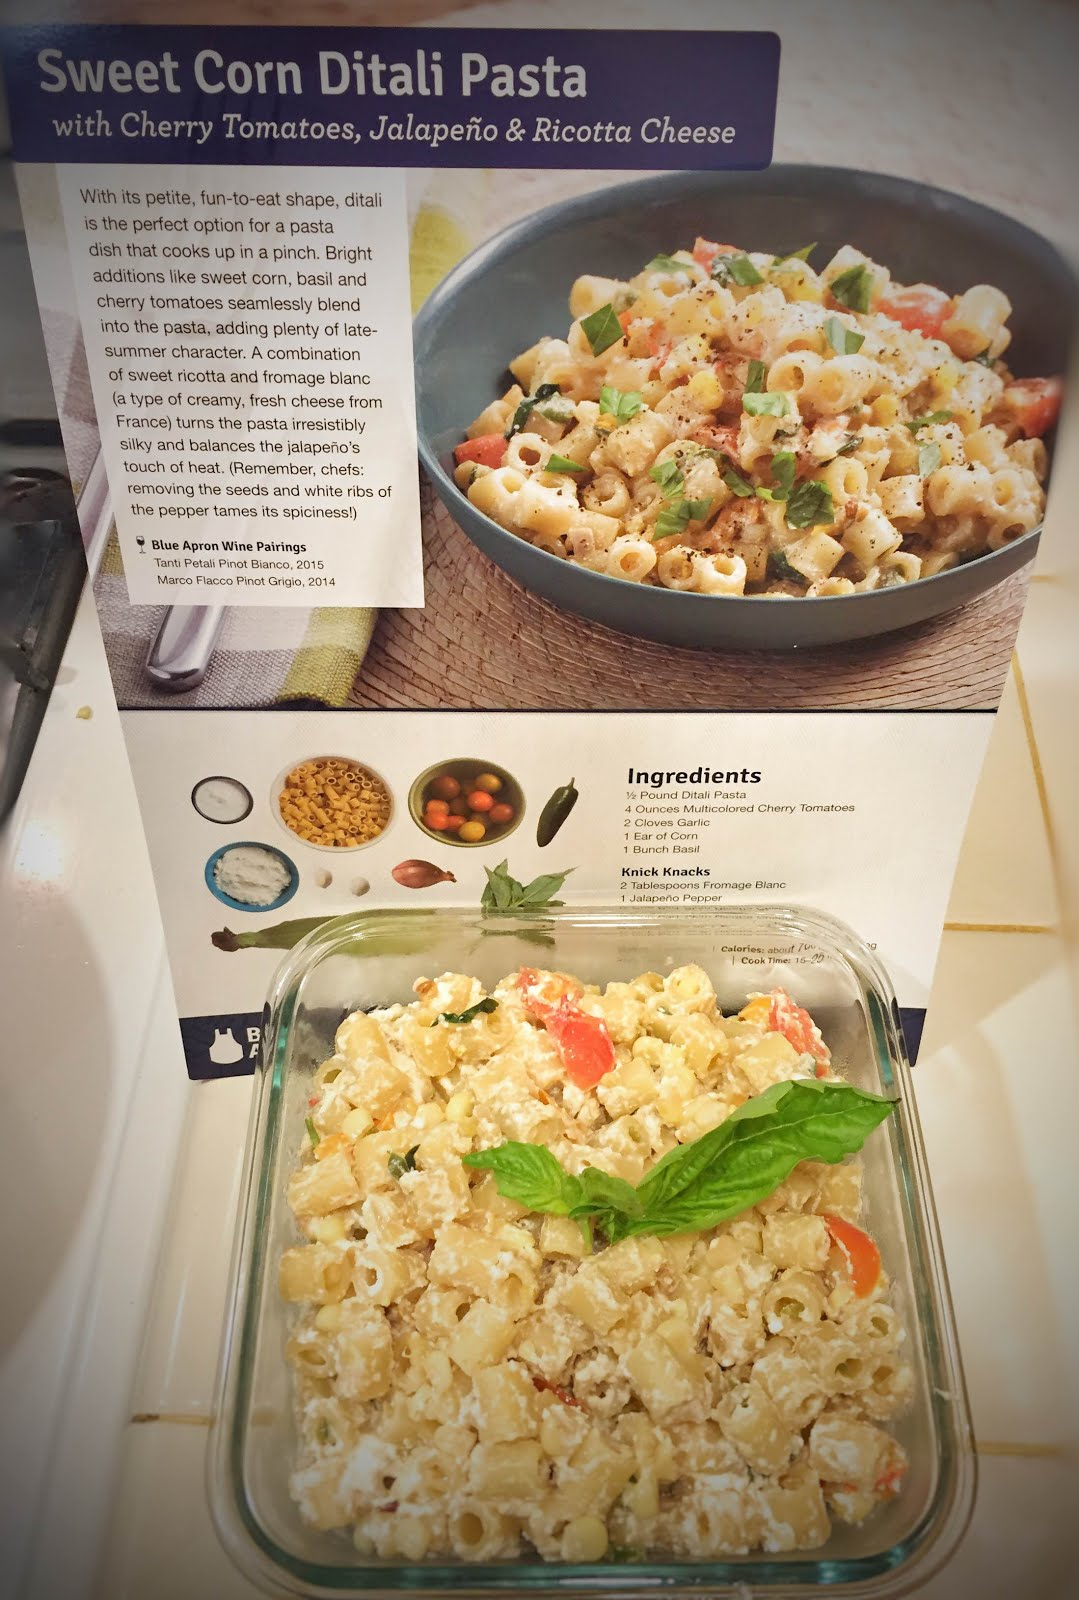 Blue apron yellow tomato pasta